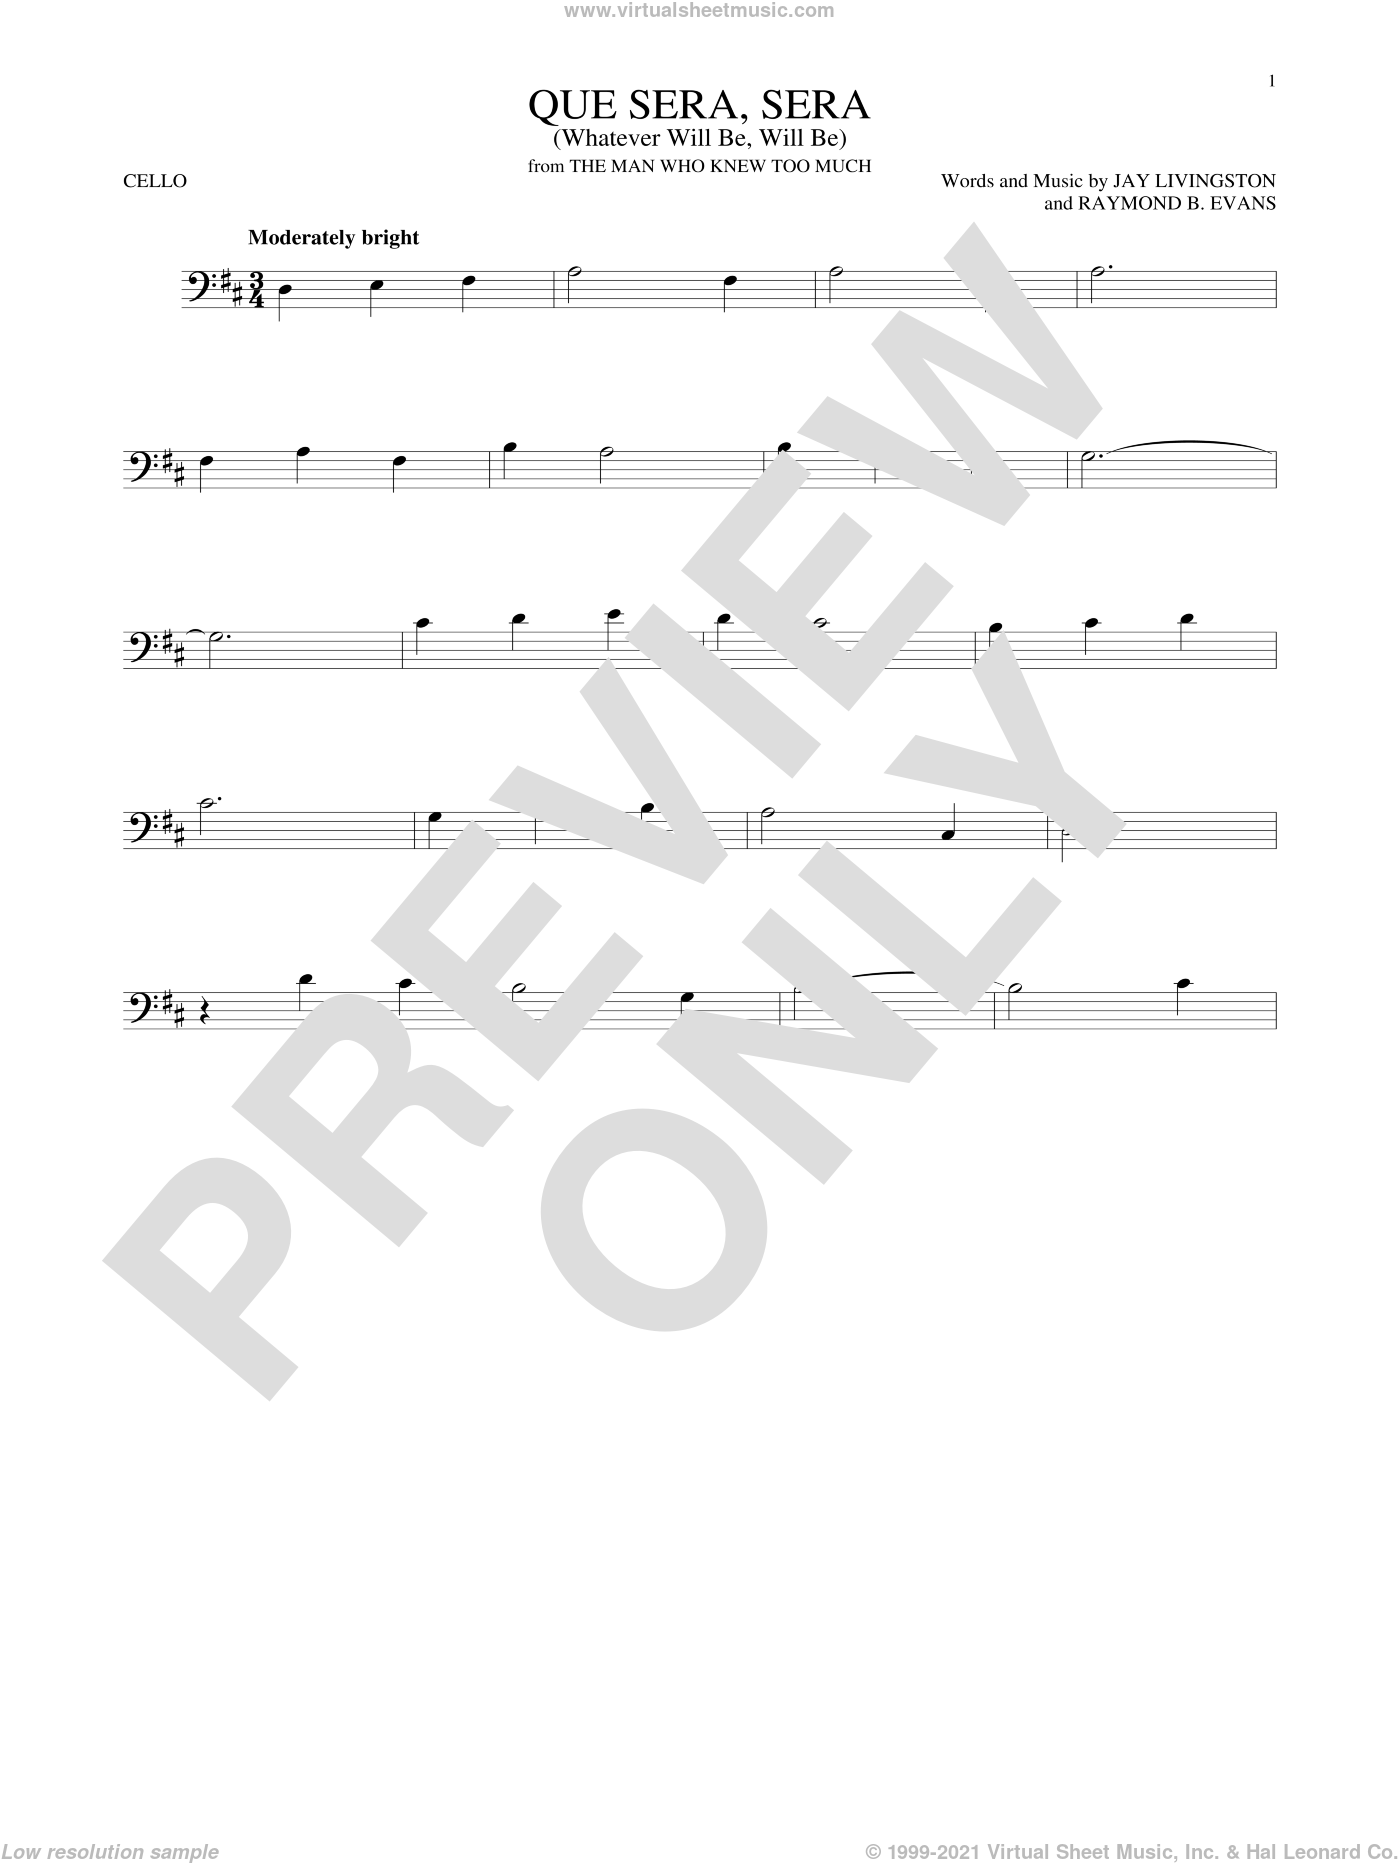 Que Sera, Sera (Whatever Will Be, Will Be) sheet music for cello solo by Jay Livingston & Ray Evans, Doris Day, Jay Livingston and Raymond B. Evans, intermediate skill level